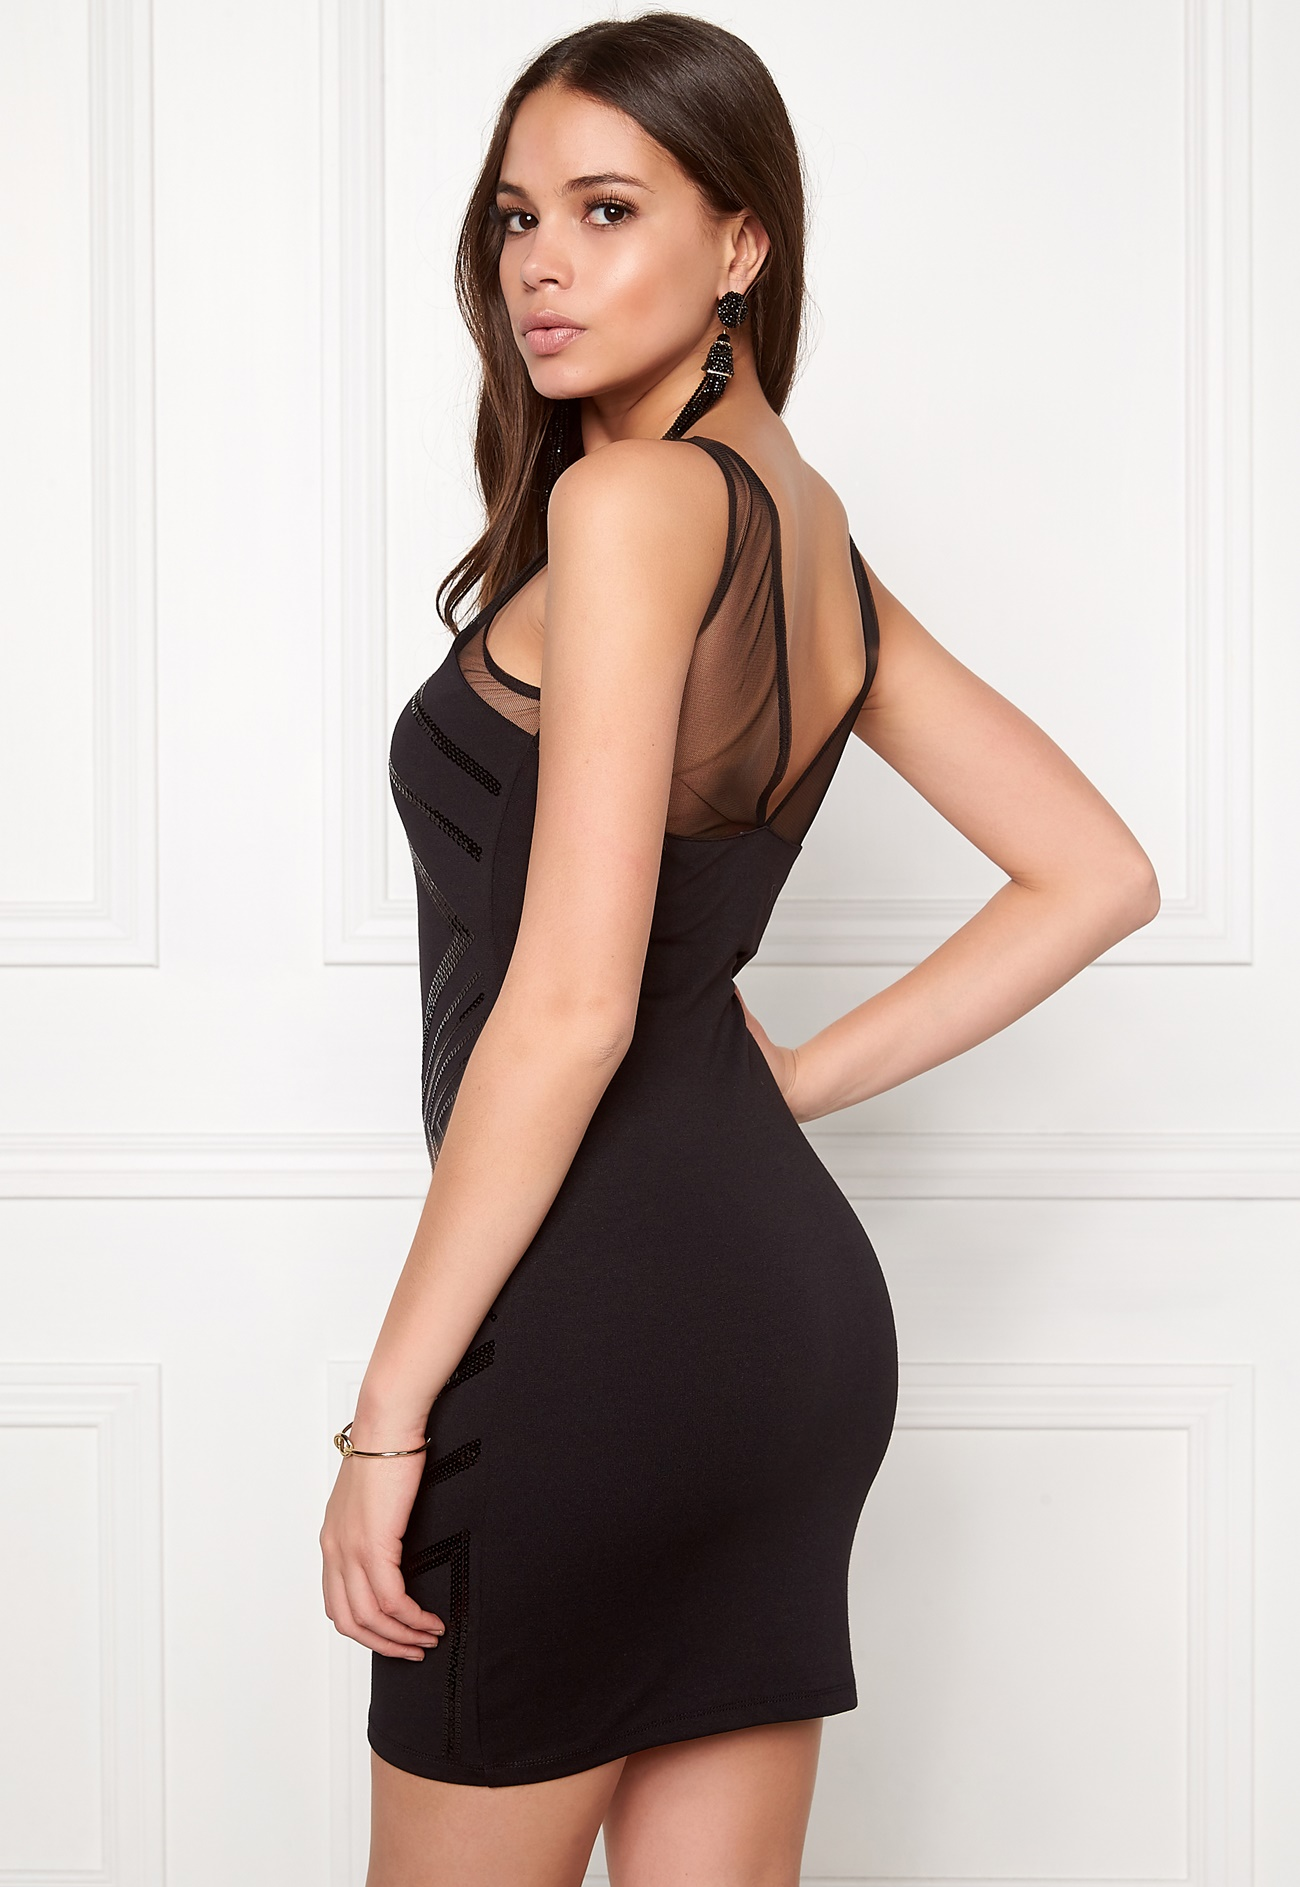 Watch Black Dress porn videos for free, here on tubidyindir.ga Discover the growing collection of high quality Most Relevant XXX movies and clips. No other sex tube is more popular and features more Black Dress scenes than Pornhub! Browse through our impressive selection of porn videos in HD quality on any device you own.